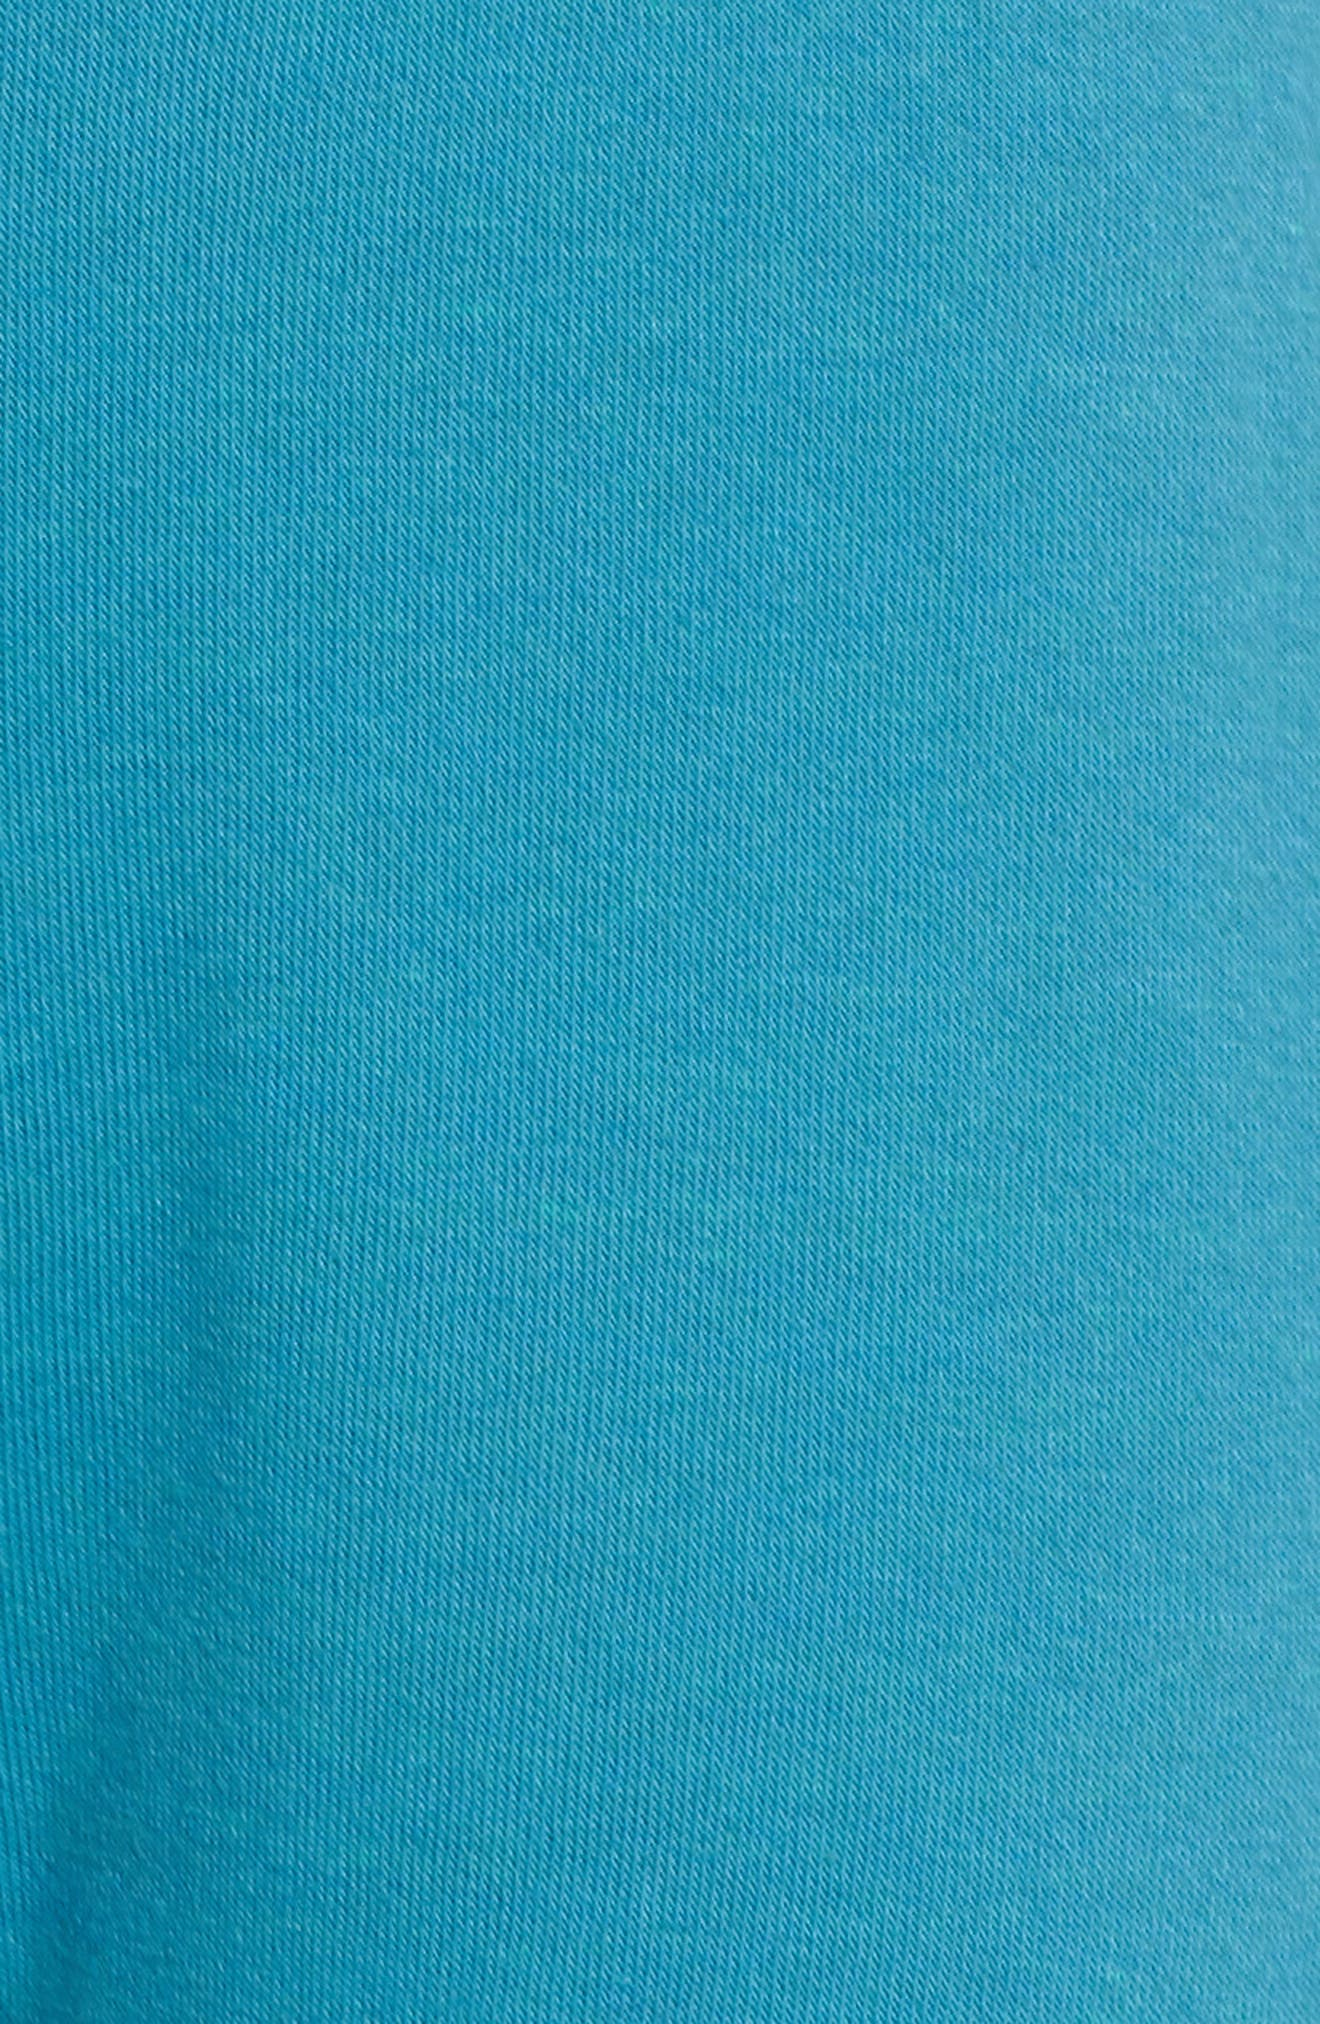 Faded Sweatpants,                             Alternate thumbnail 5, color,                             TEAL / VINTAGE NAVY